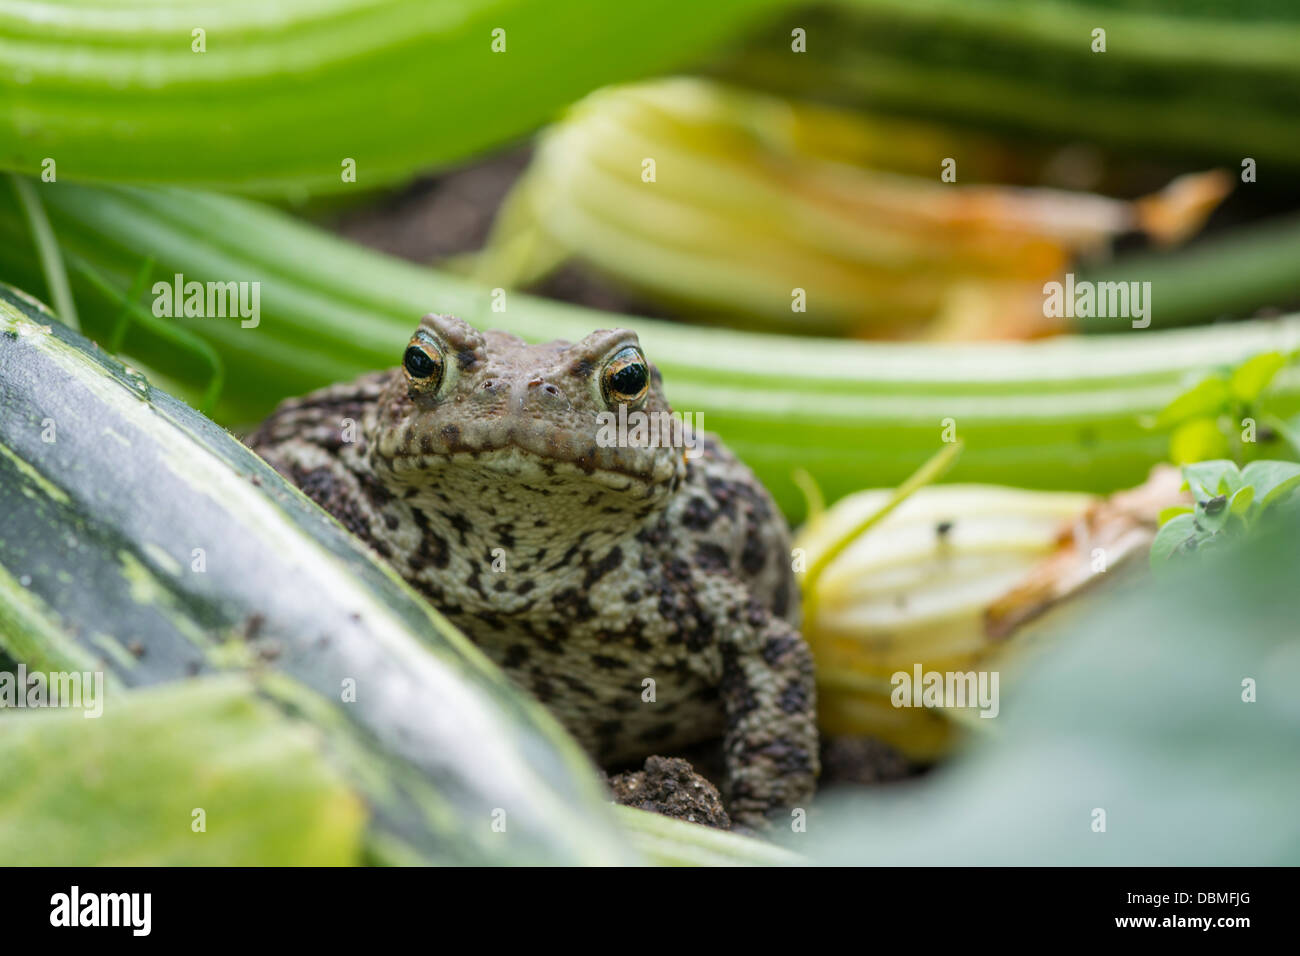 Common Toad England July bufo bufo waiting for prey amongst base of garden courgette plant - Stock Image